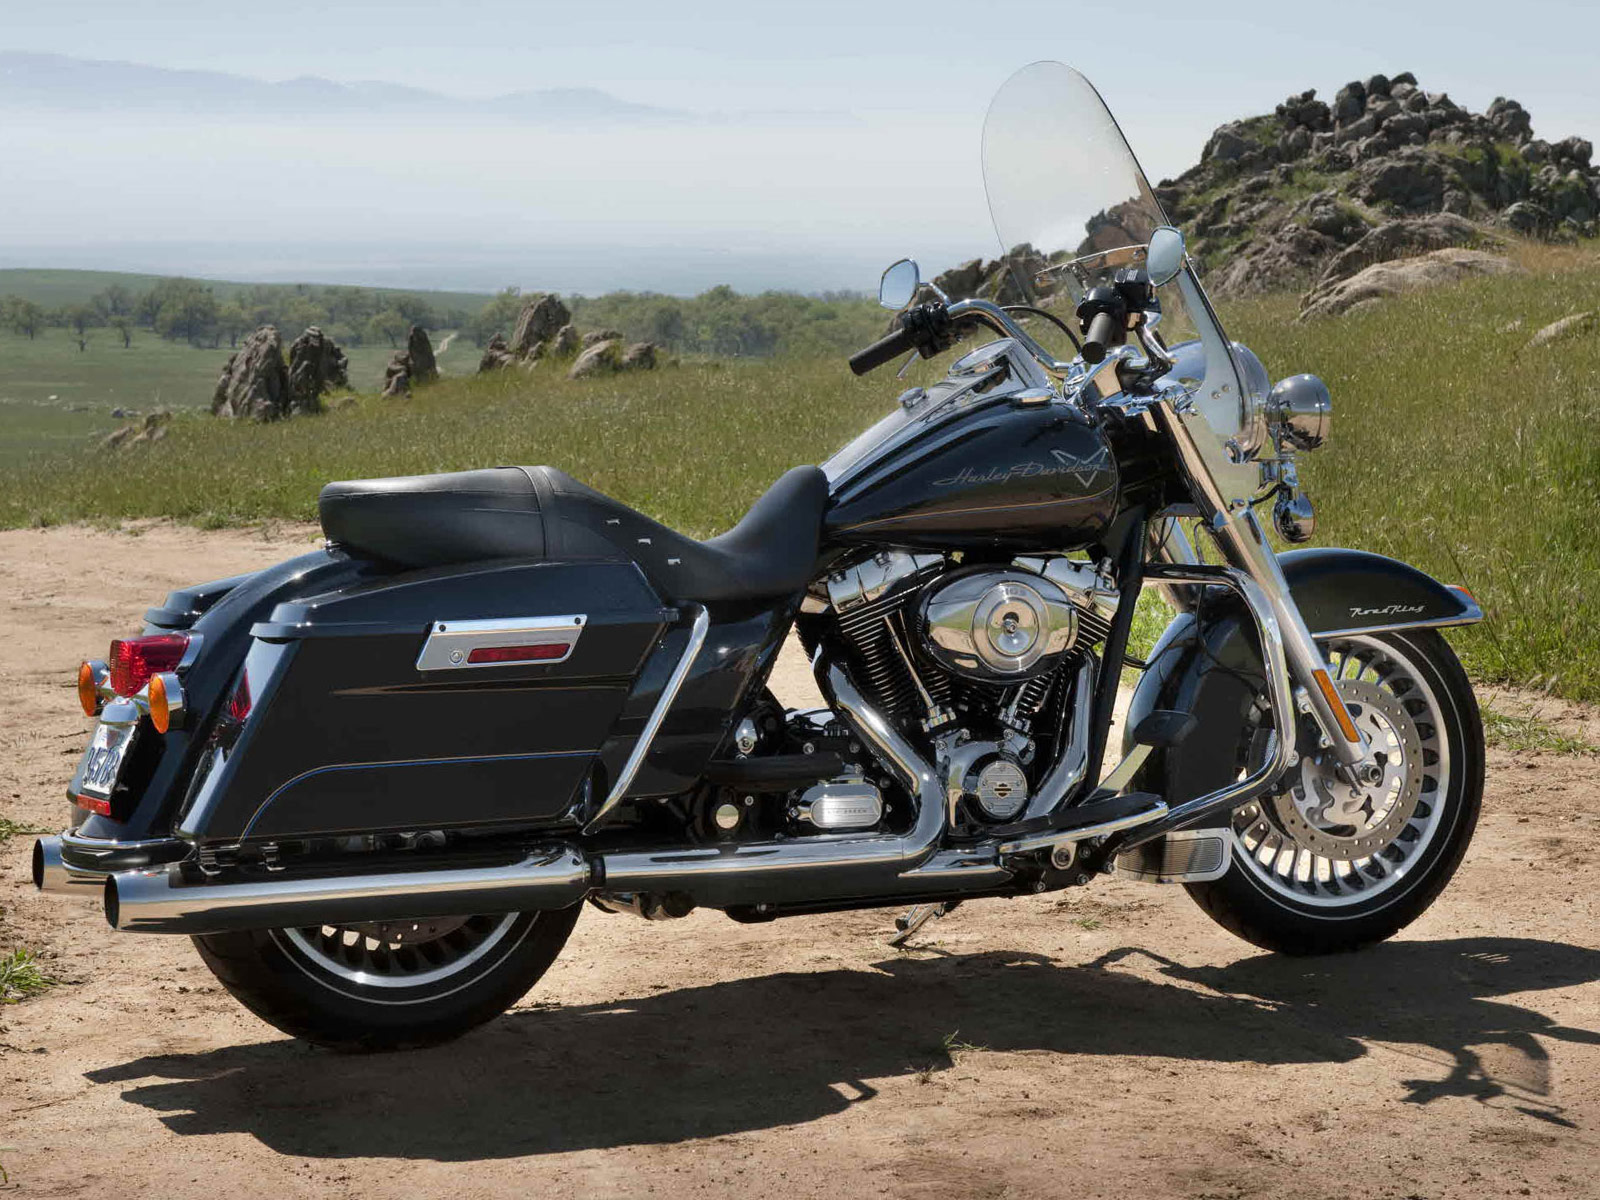 harleydavidson pictures 2012 flhr road king. Black Bedroom Furniture Sets. Home Design Ideas